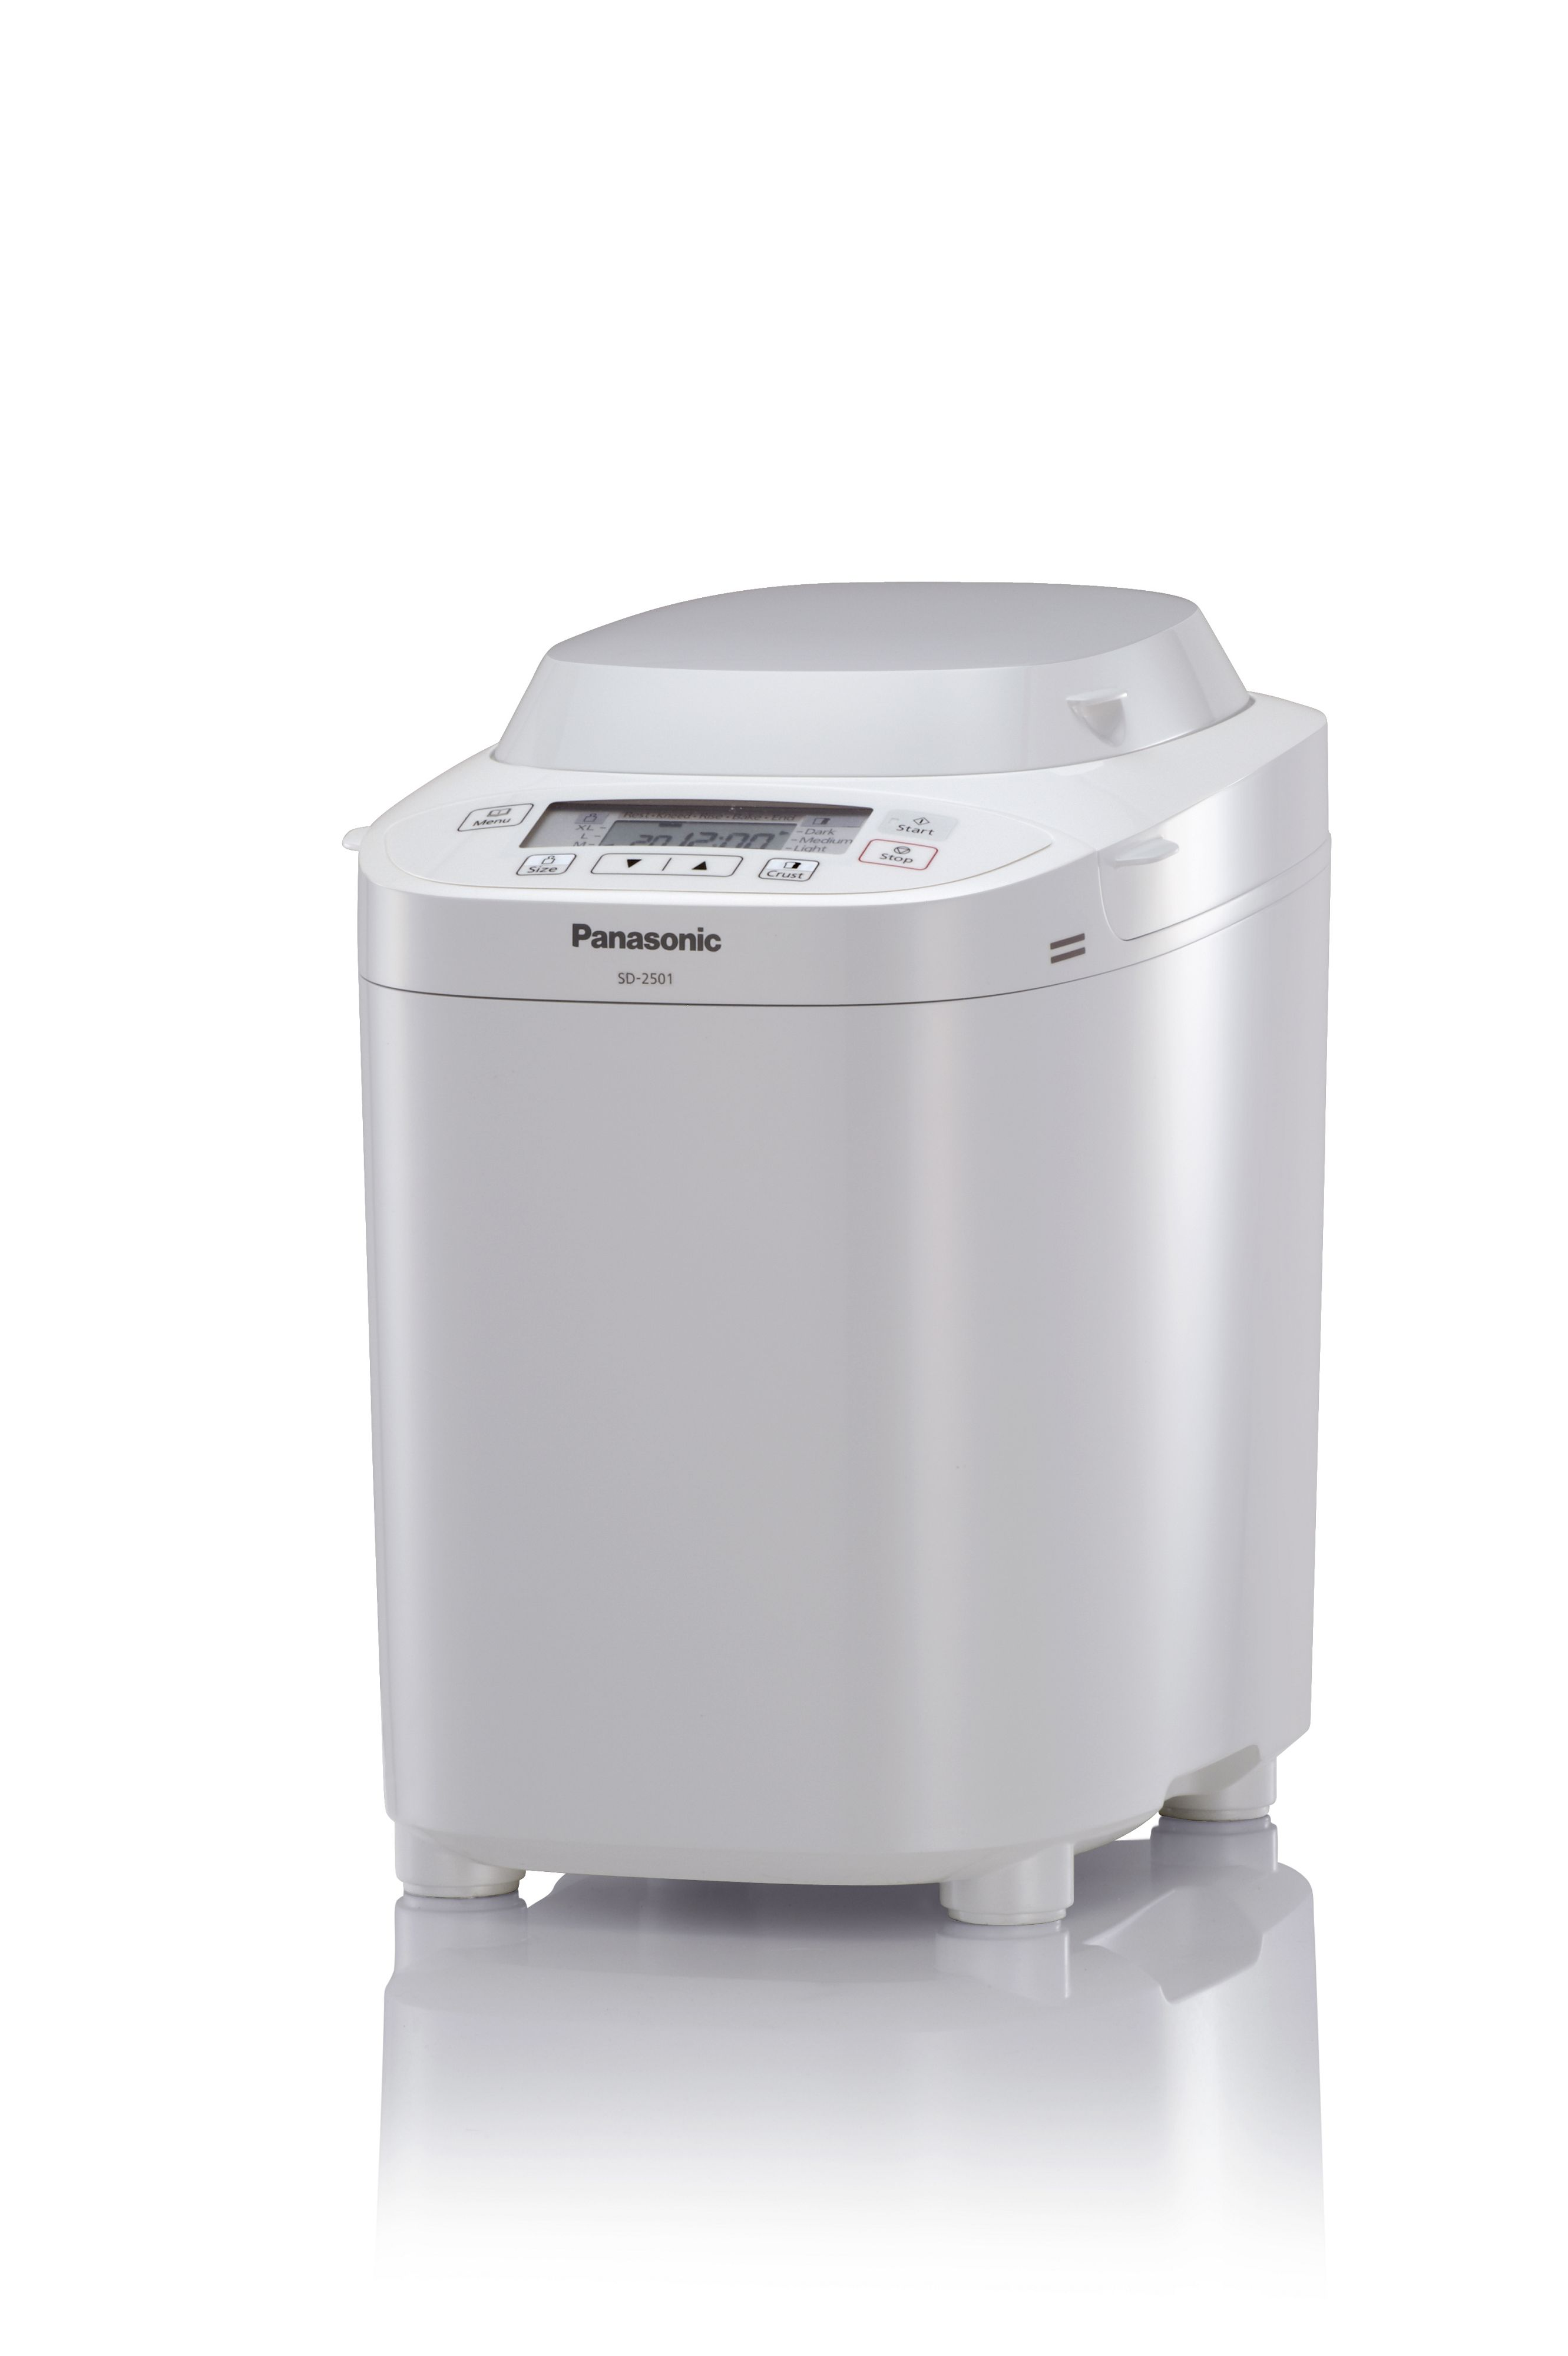 Panasonic breadmaker, white